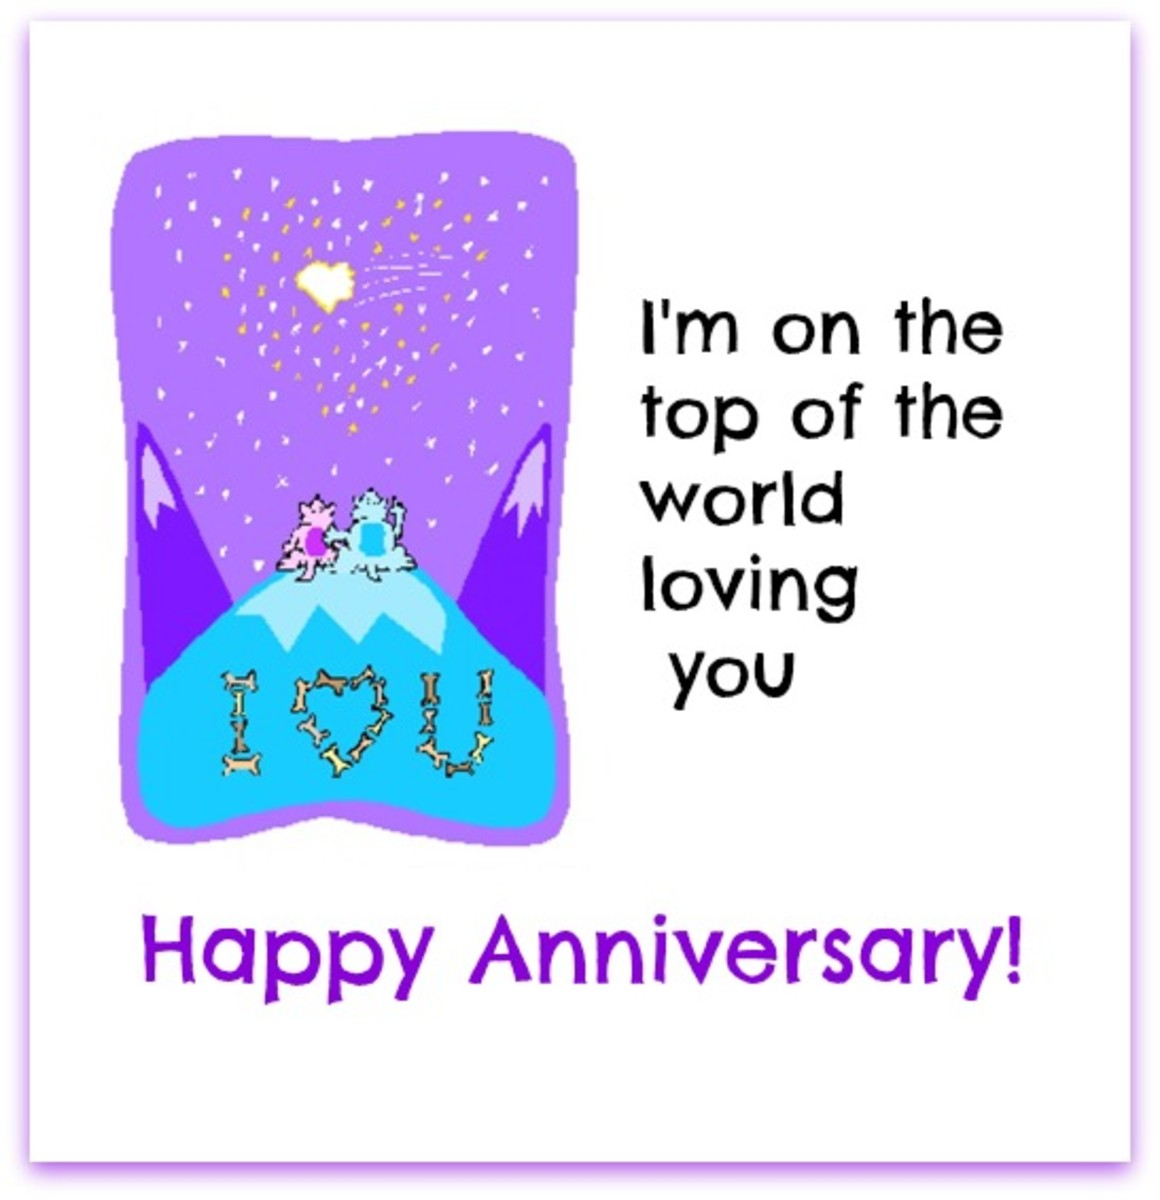 Happy Anniversary with Love to Spouse